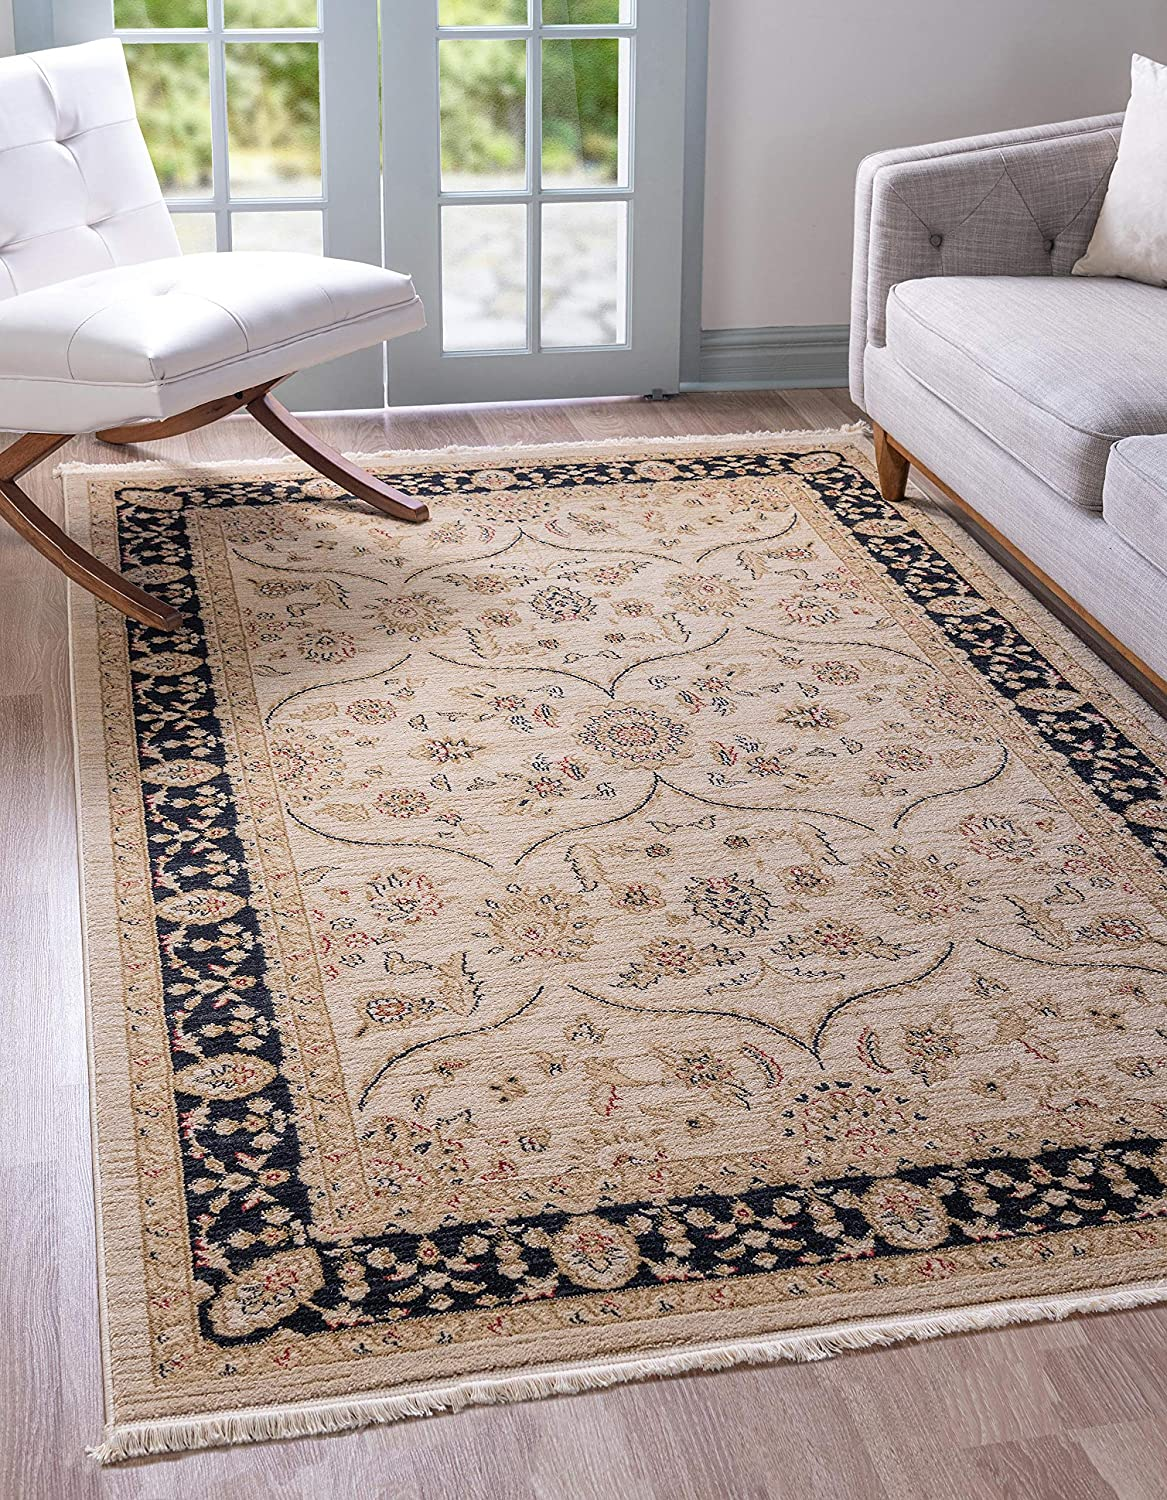 Unique Loom Edinburgh Collection Oriental Traditional French Country Beige Area Rug (5' 0 x 8' 0)